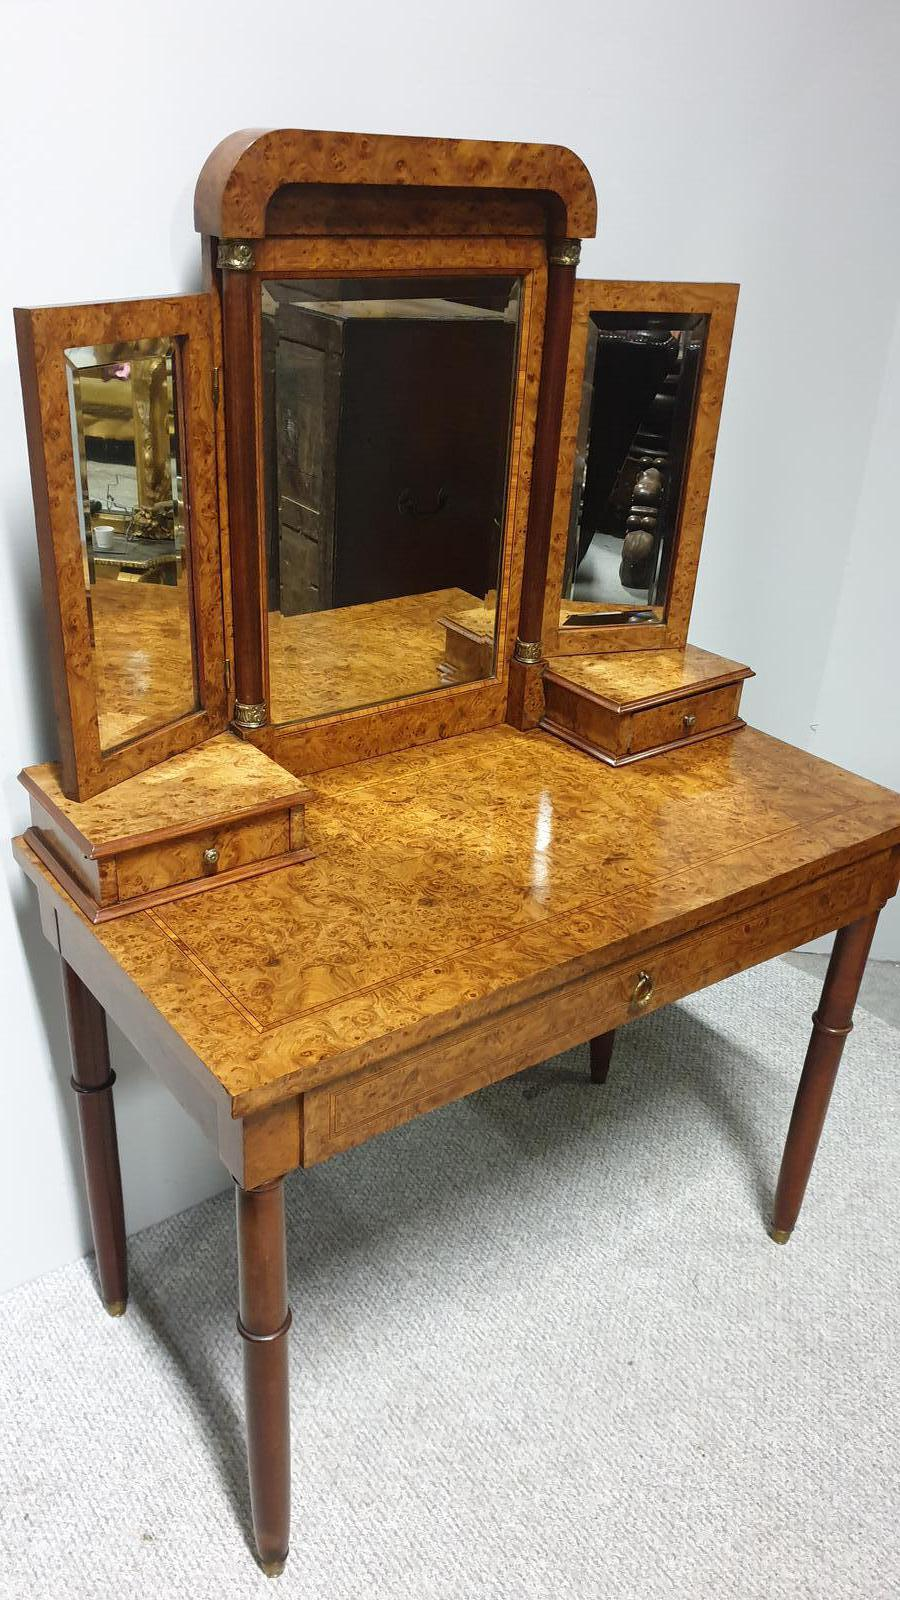 Fabulous French Burr Dressing Table (1 of 1)